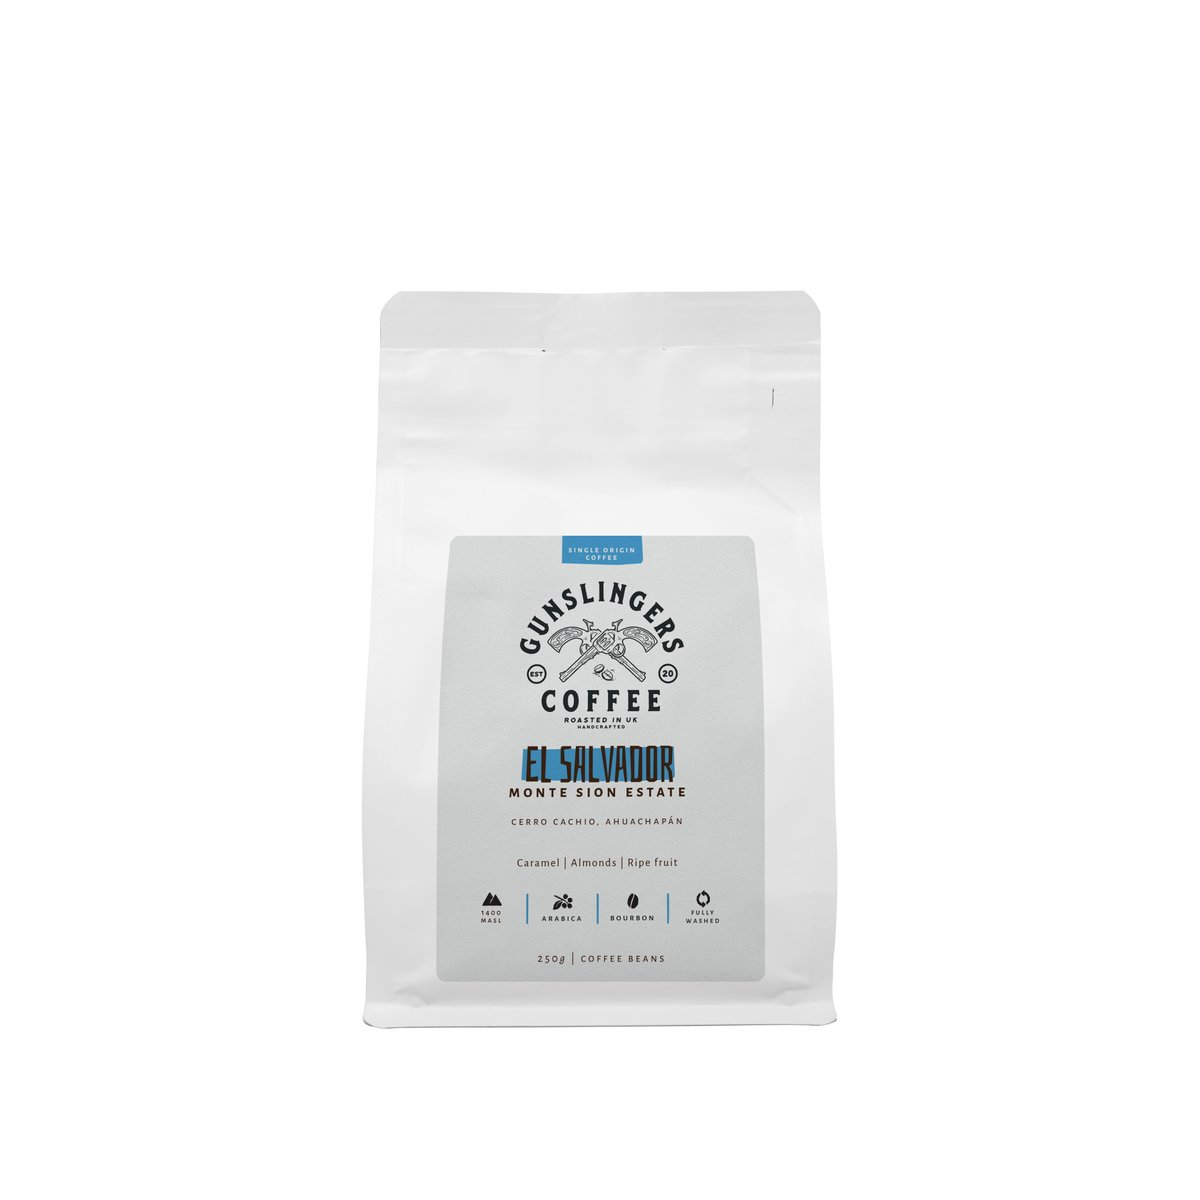 El Salvador Single Origin Arabica Whole Bean Coffee Beans